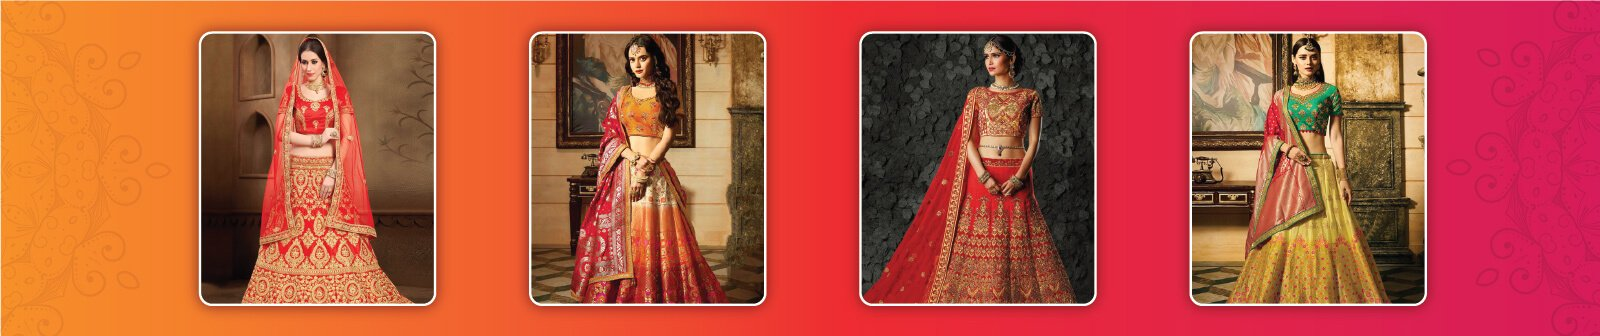 Top Bridal Wear in Chandigarh